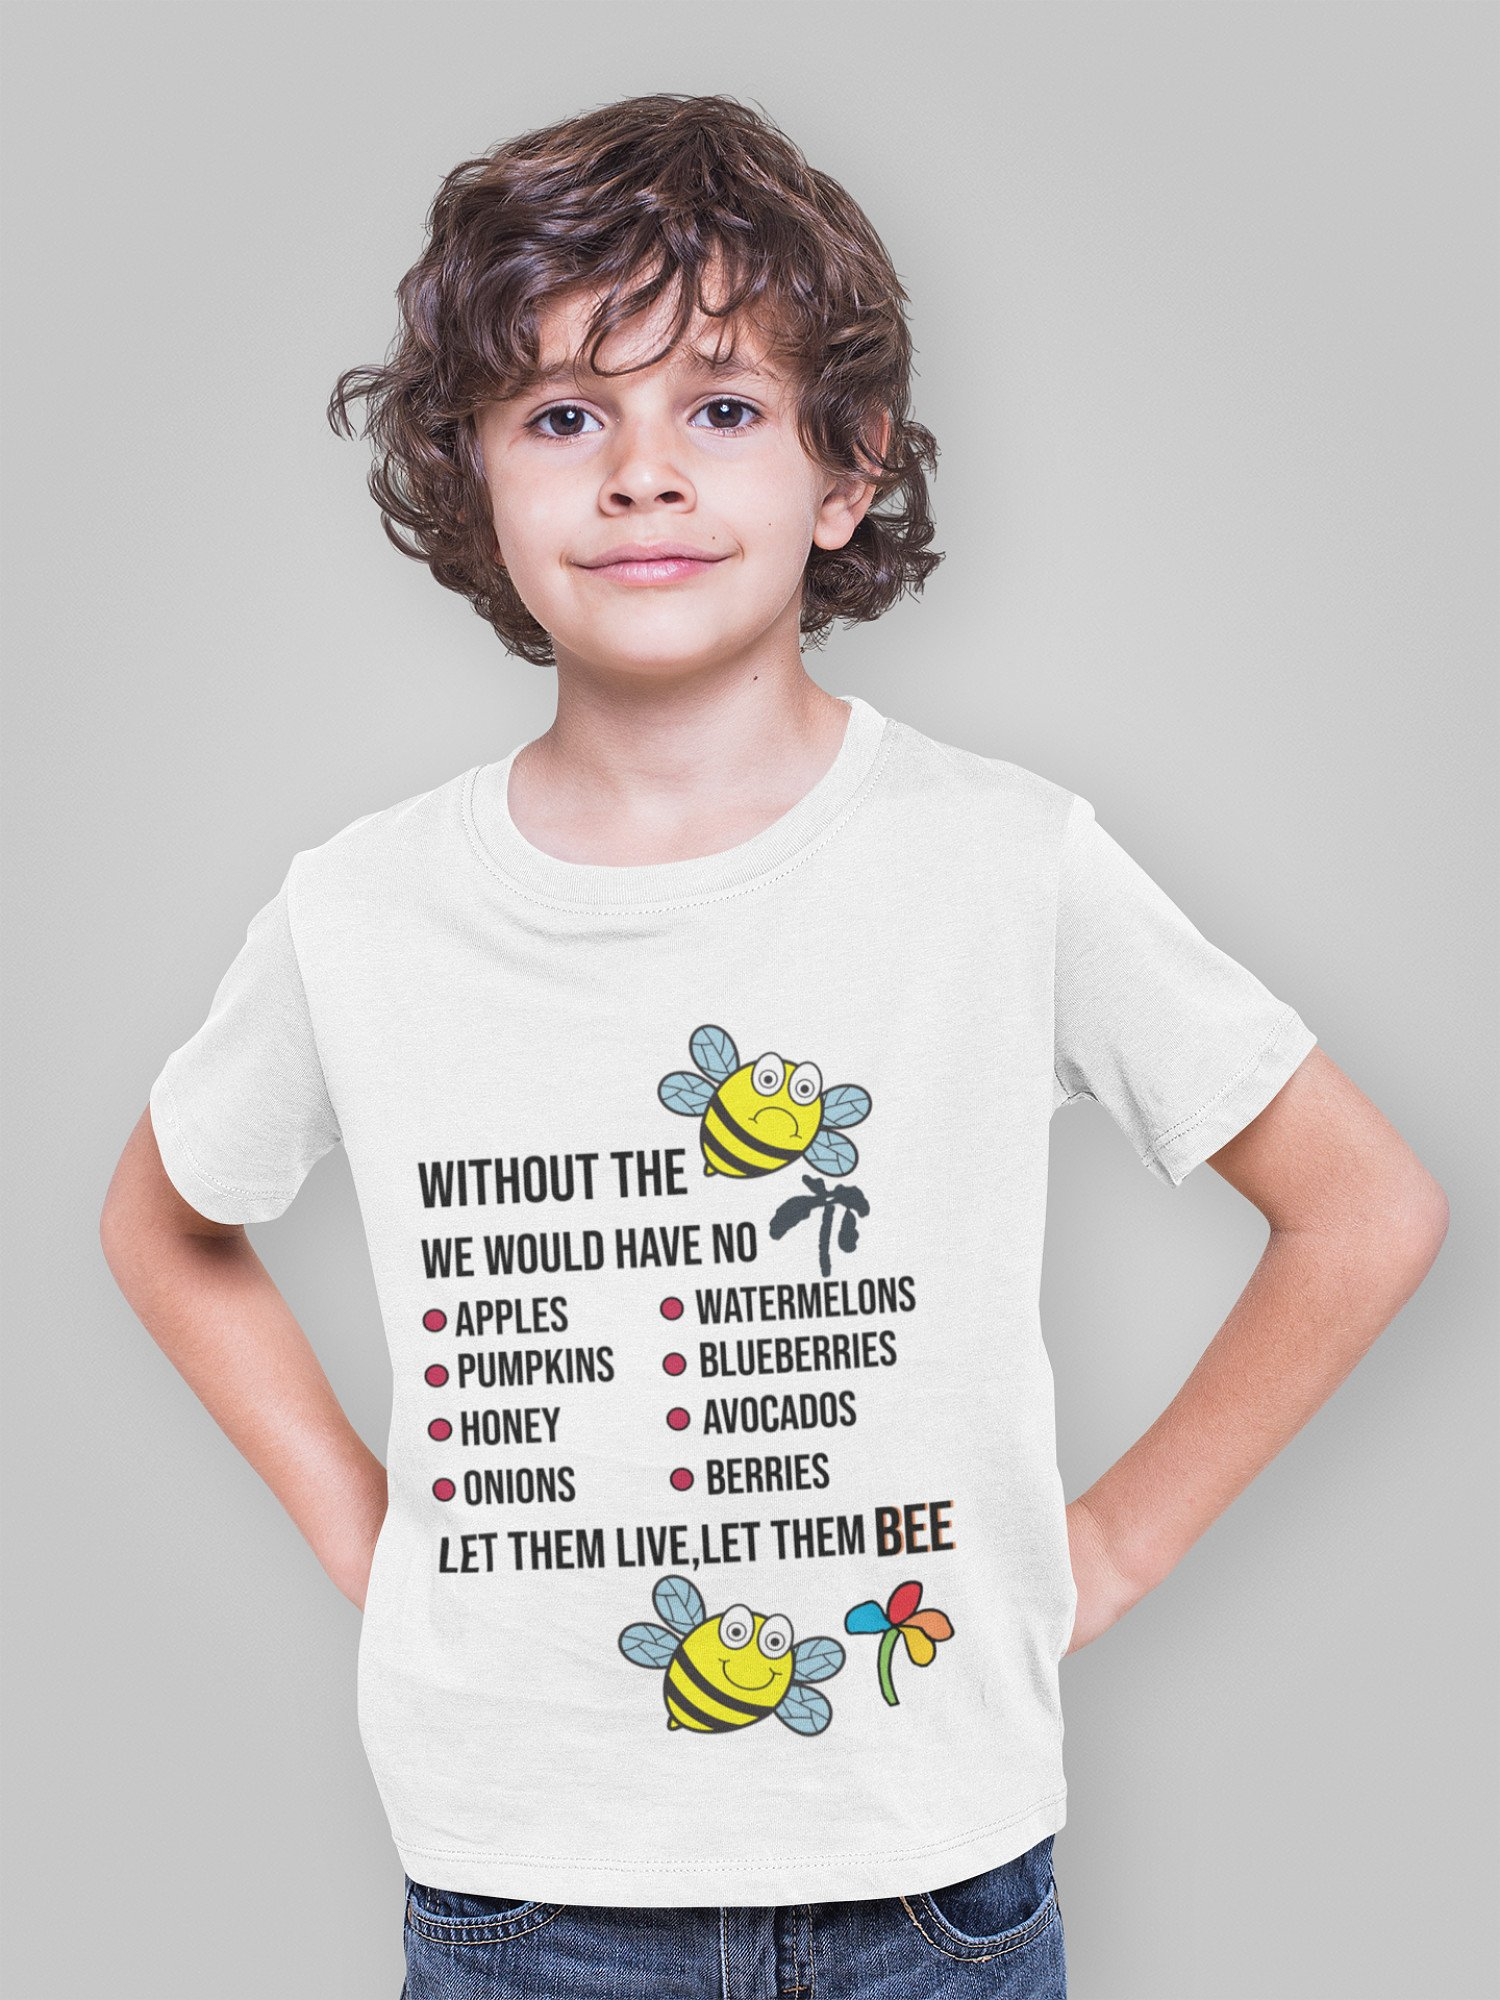 A free Designer T-shirt of your choice.